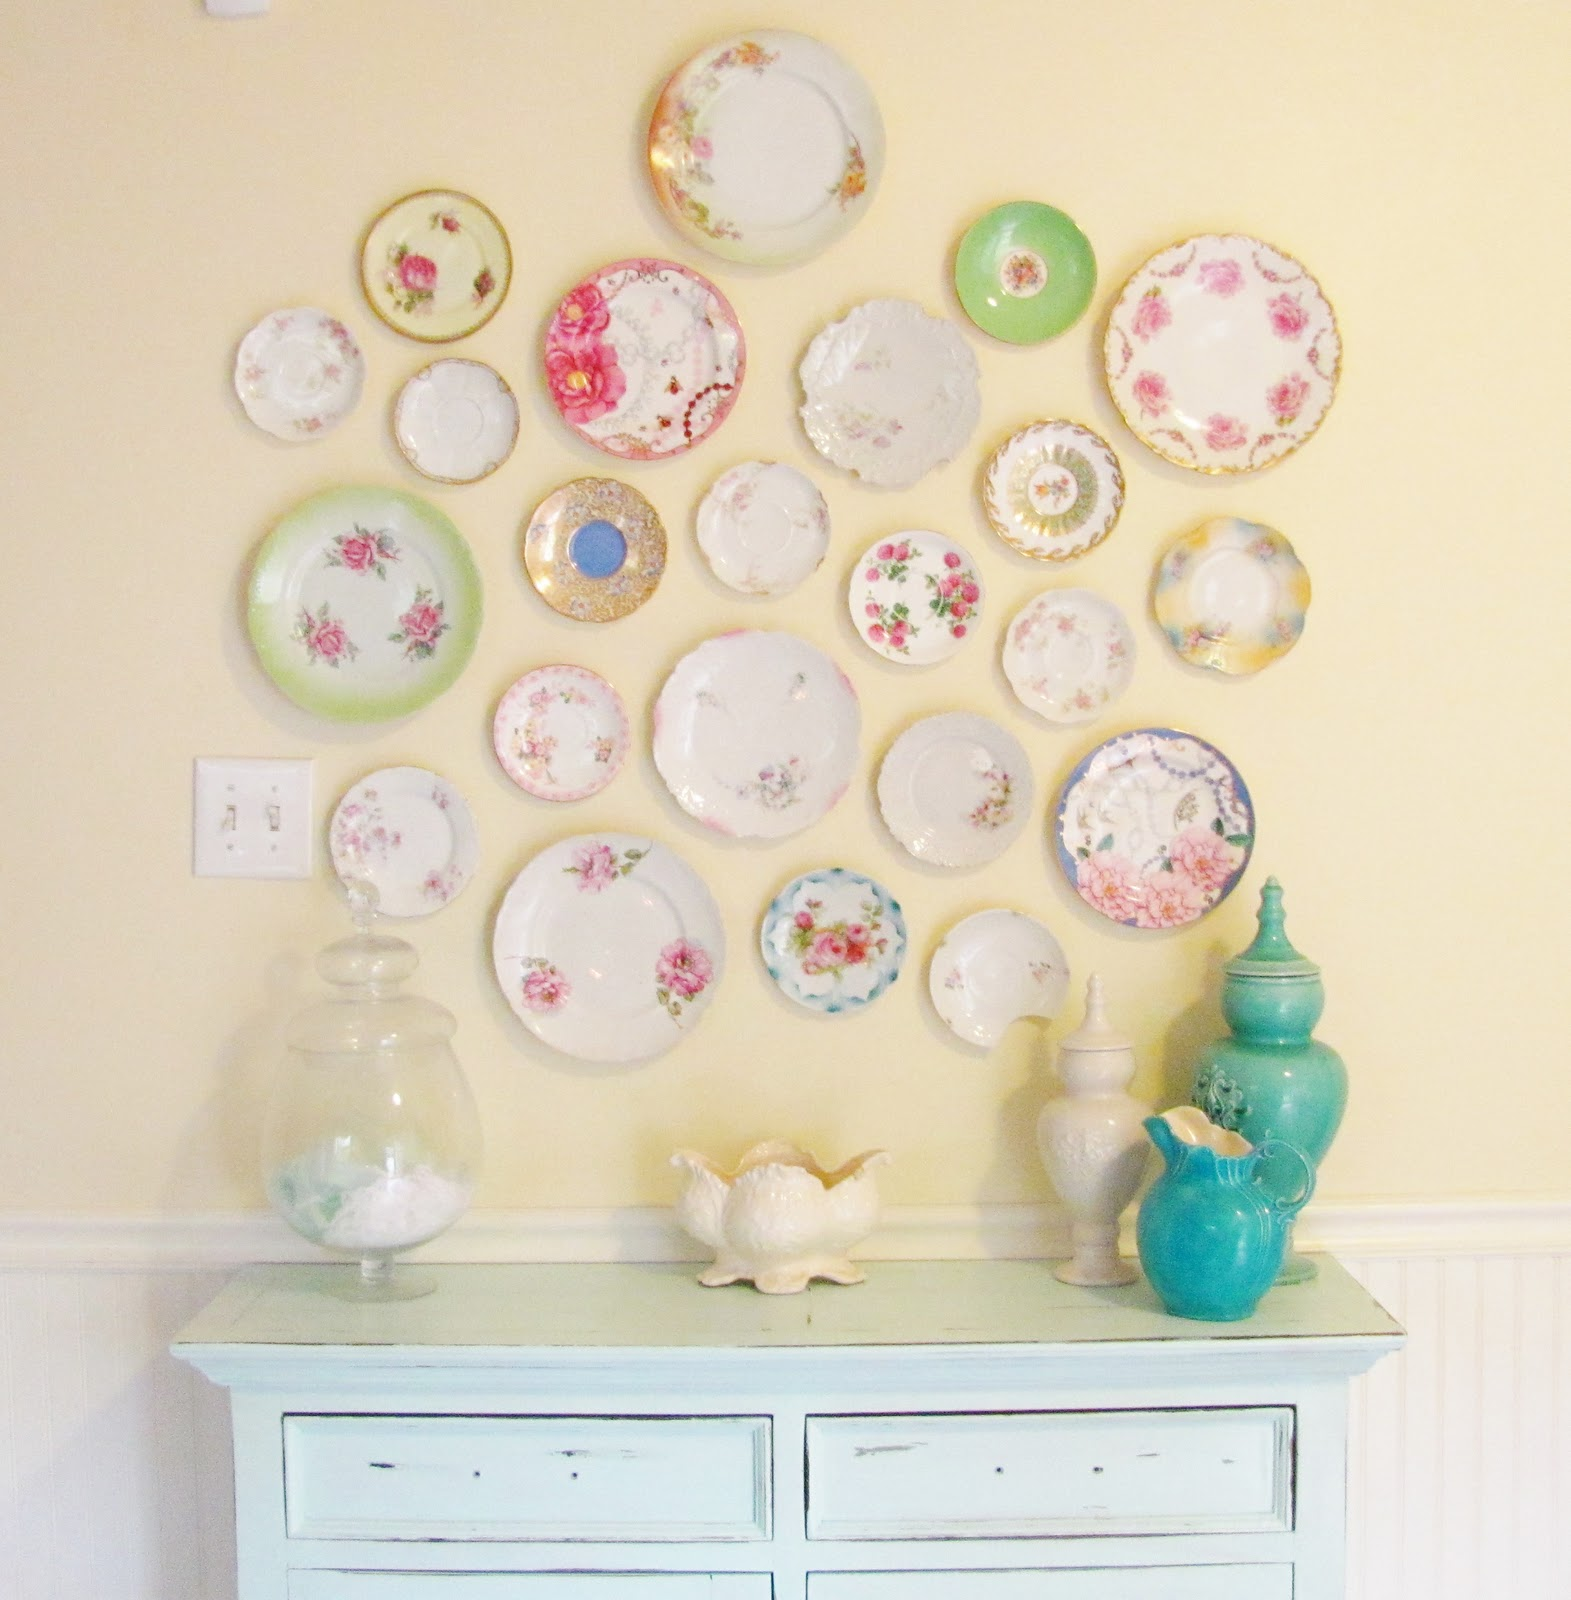 Wall Decor Silver Plates : Silver lining decor vintage plate wall reveal